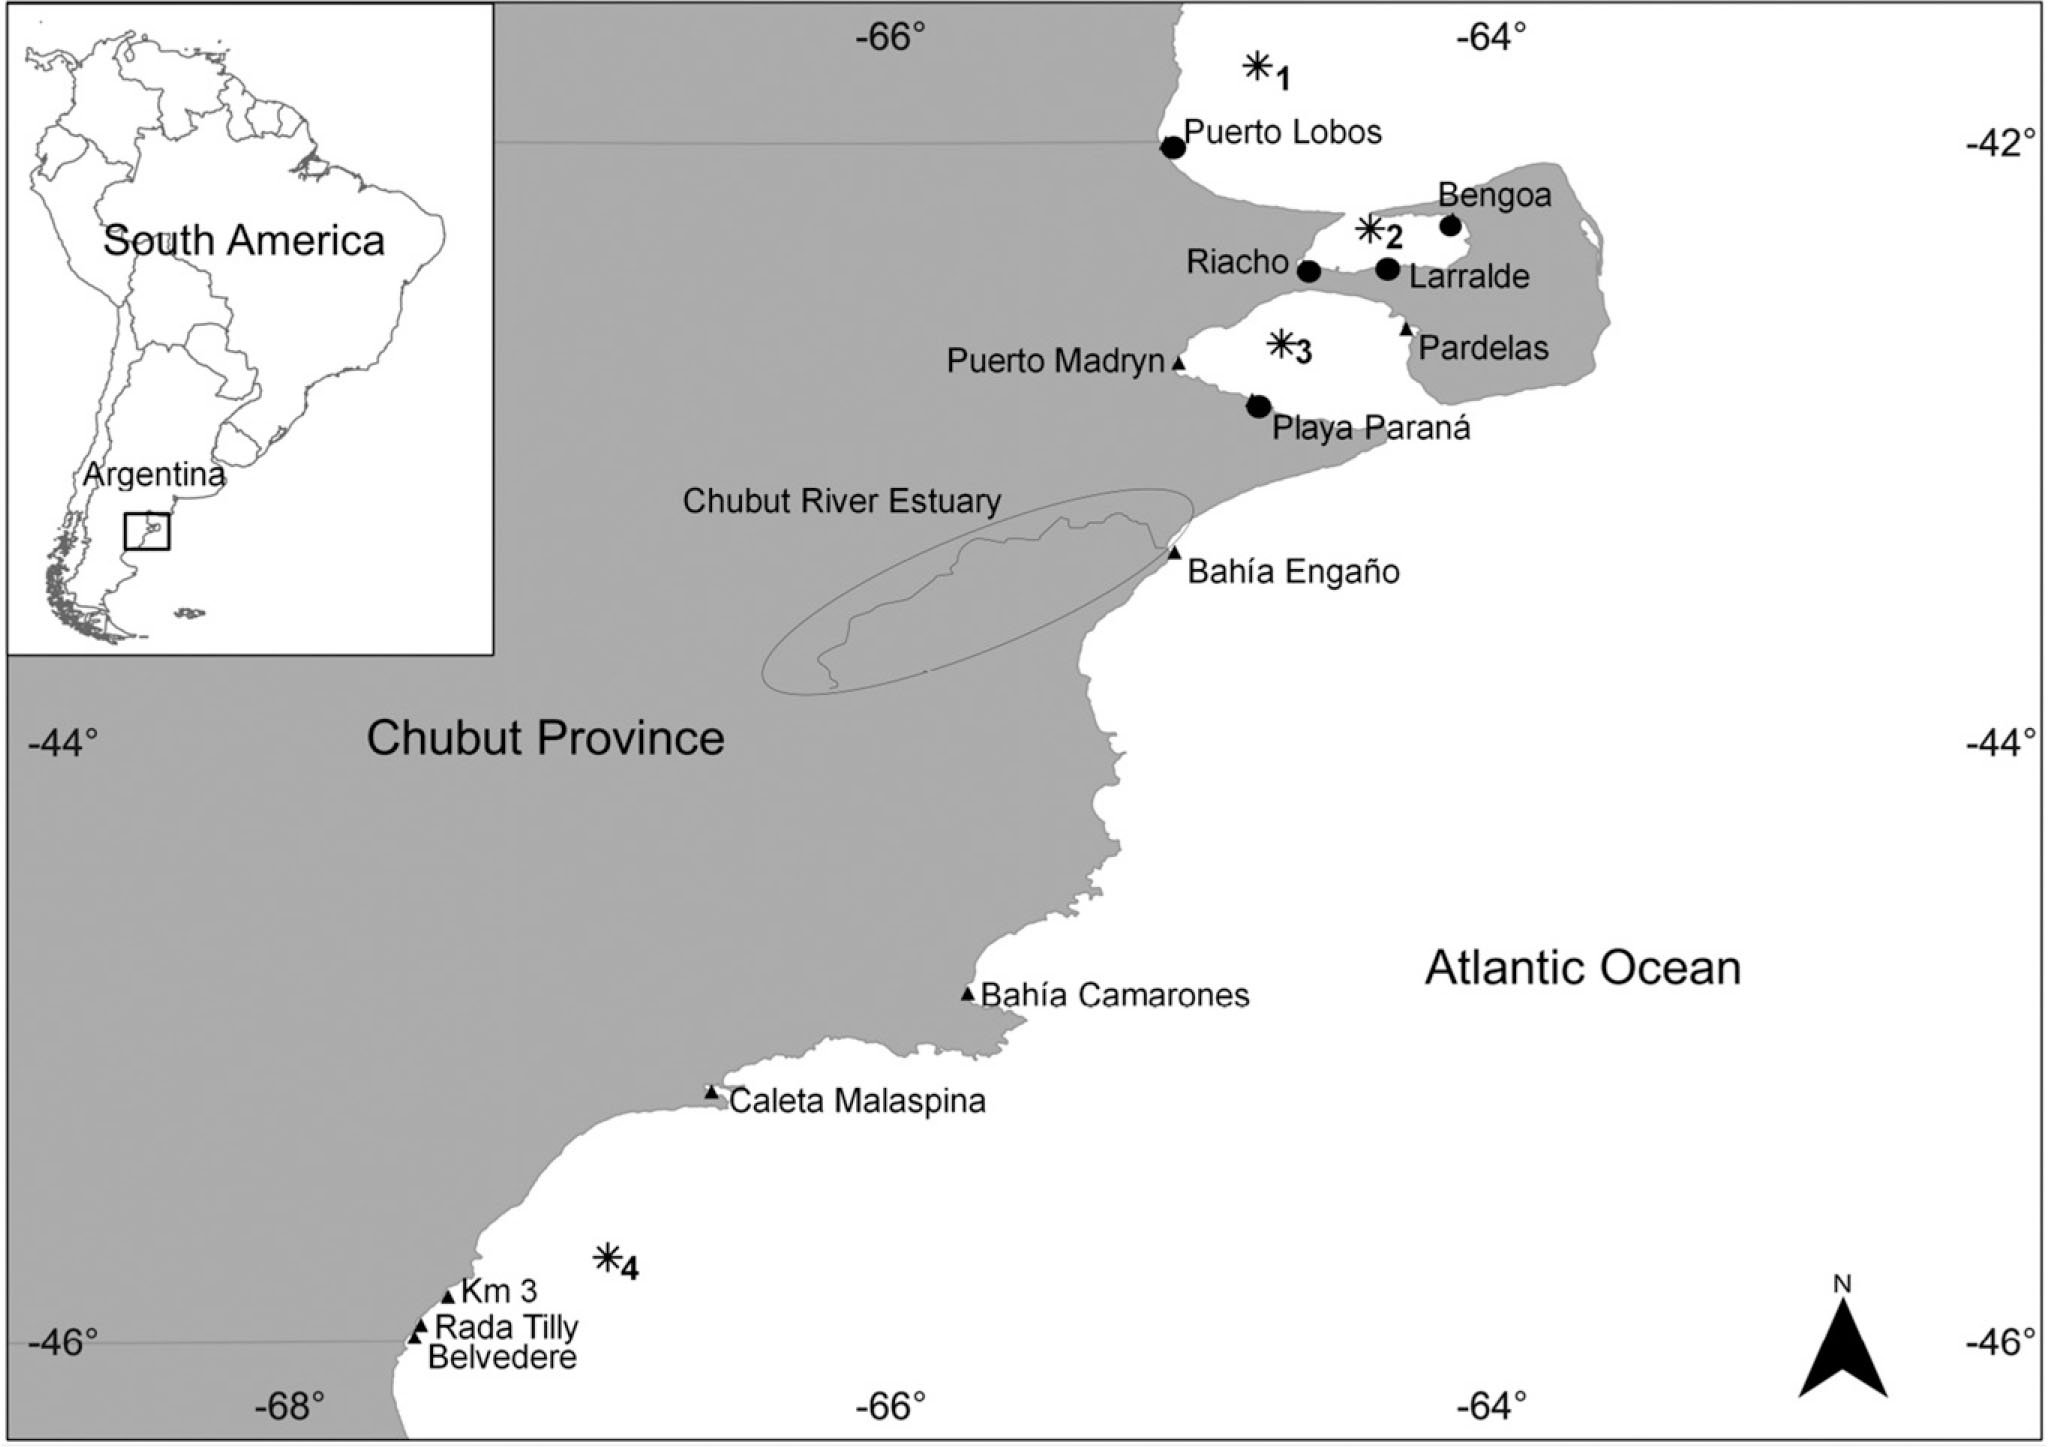 Dinophysis Species Associated With Diarrhetic Shellfish Poisoning